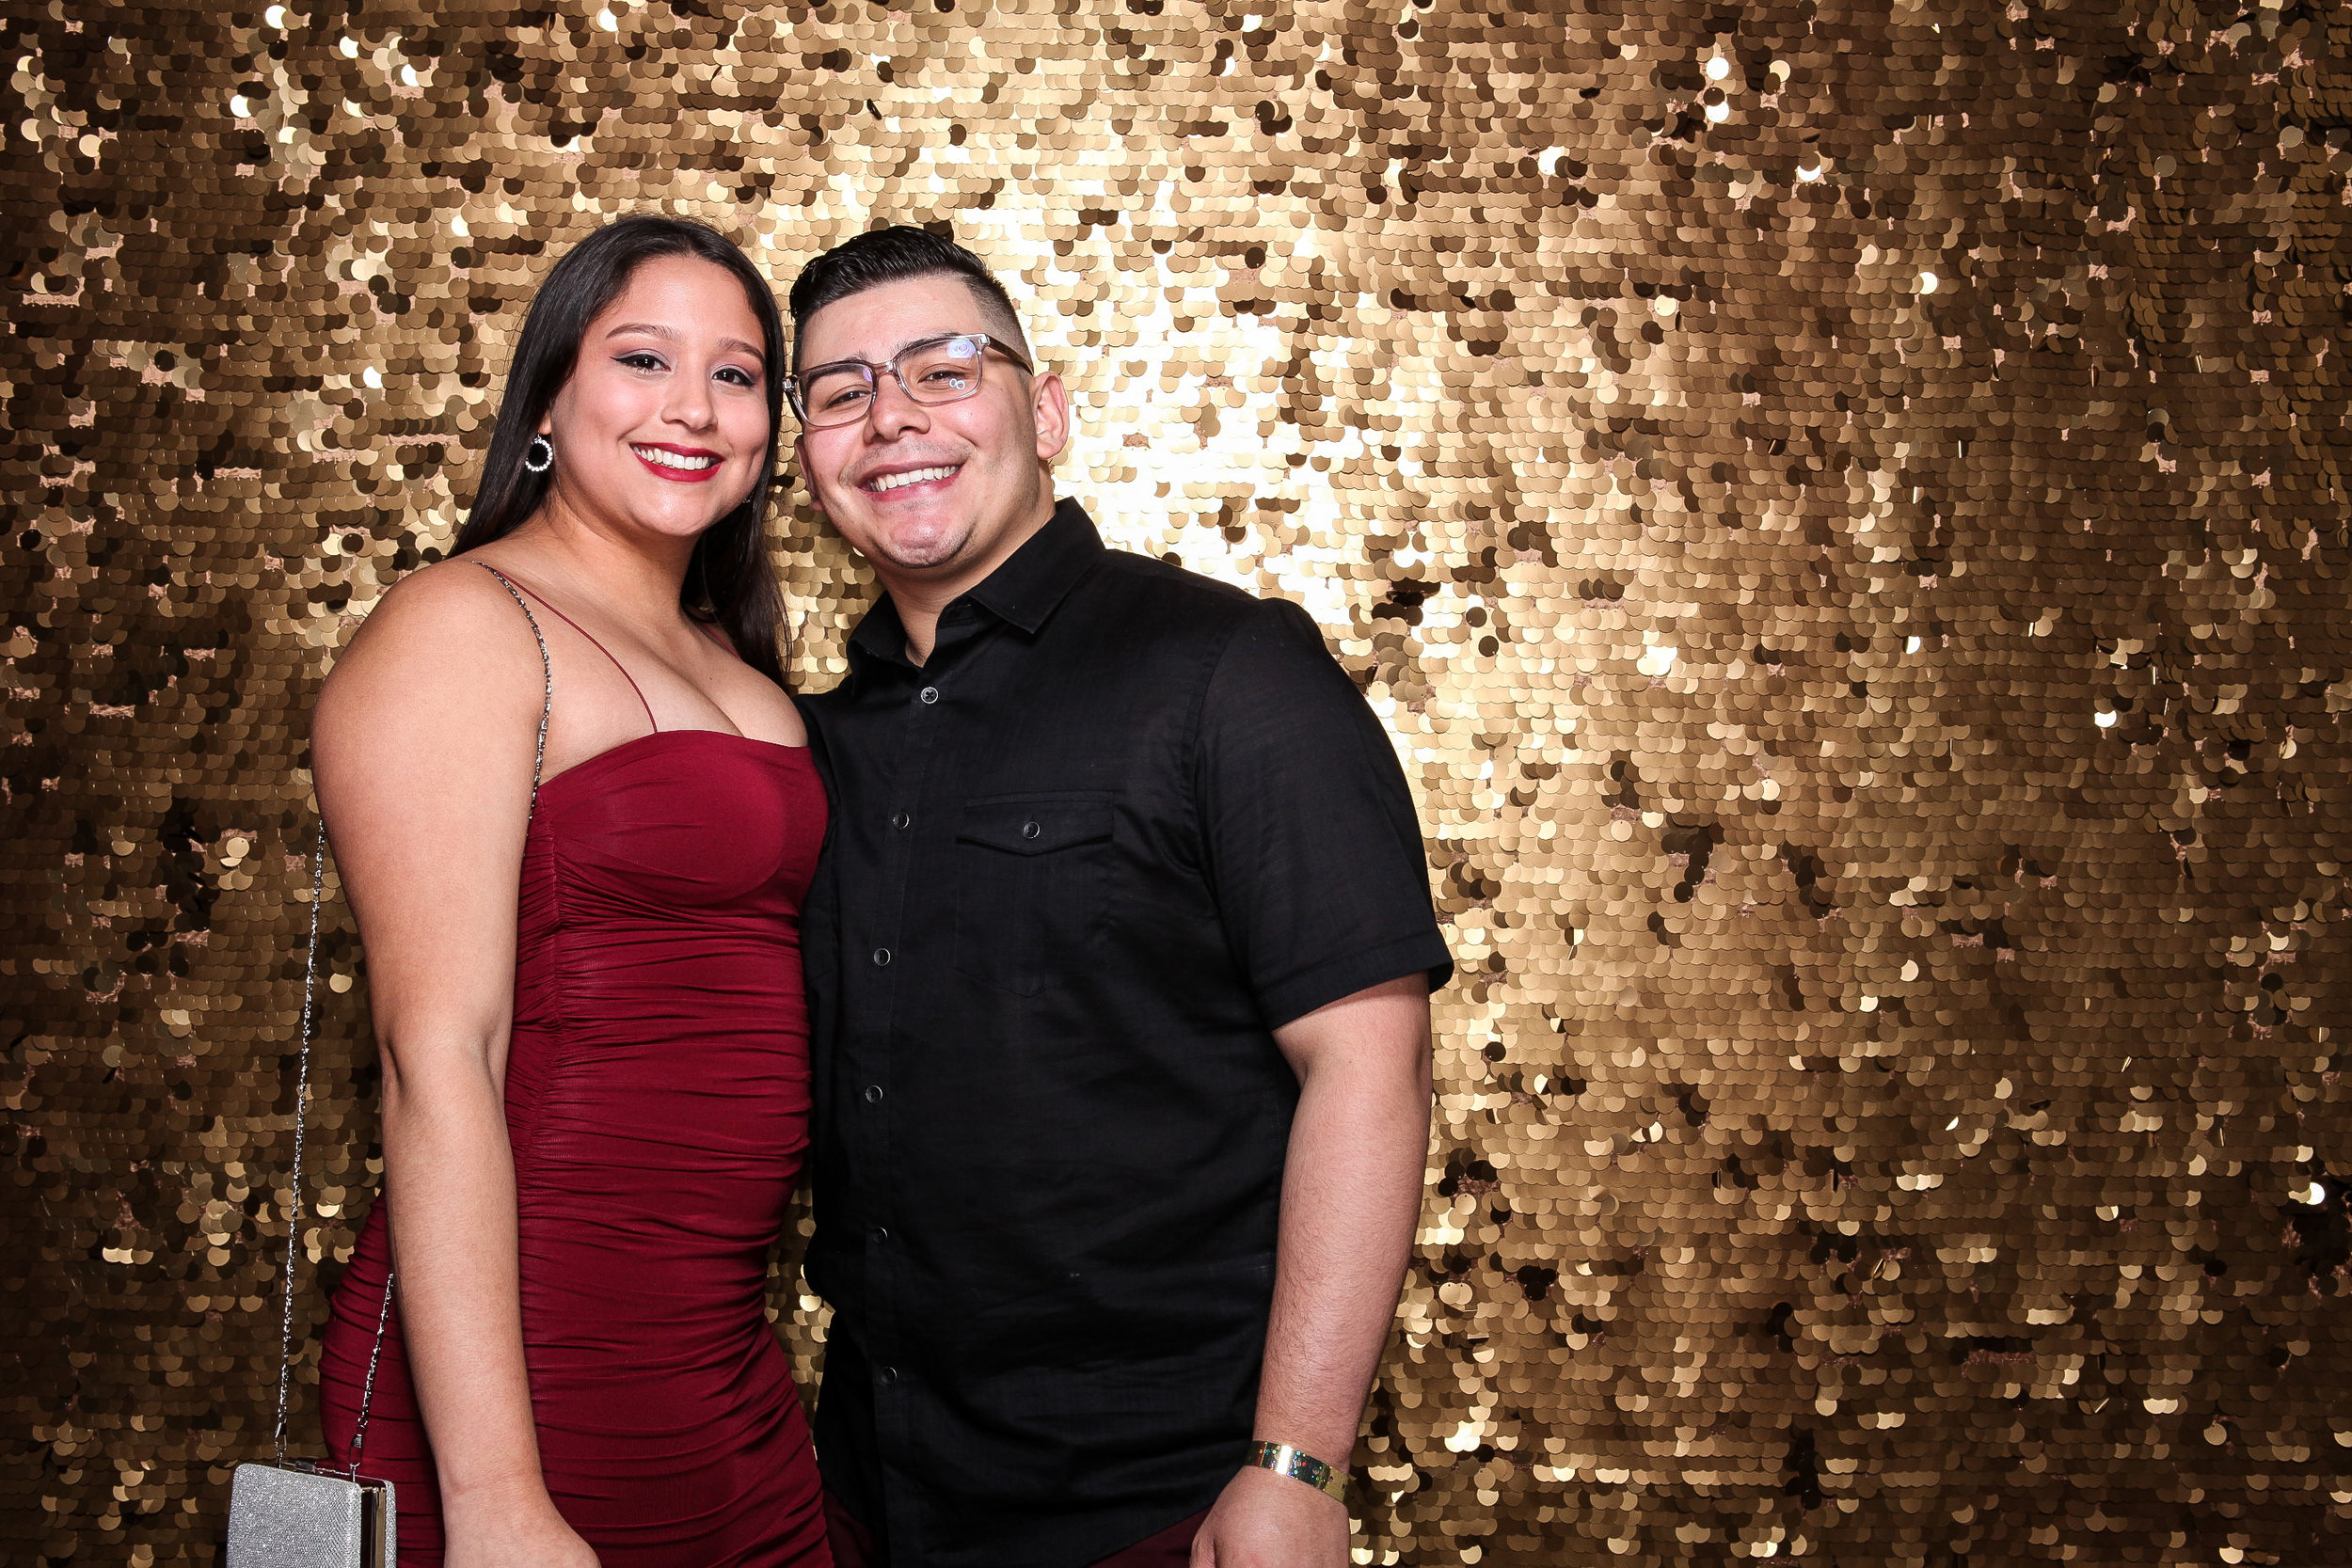 20190503_Adelphi_Senior_Formal-099.jpg